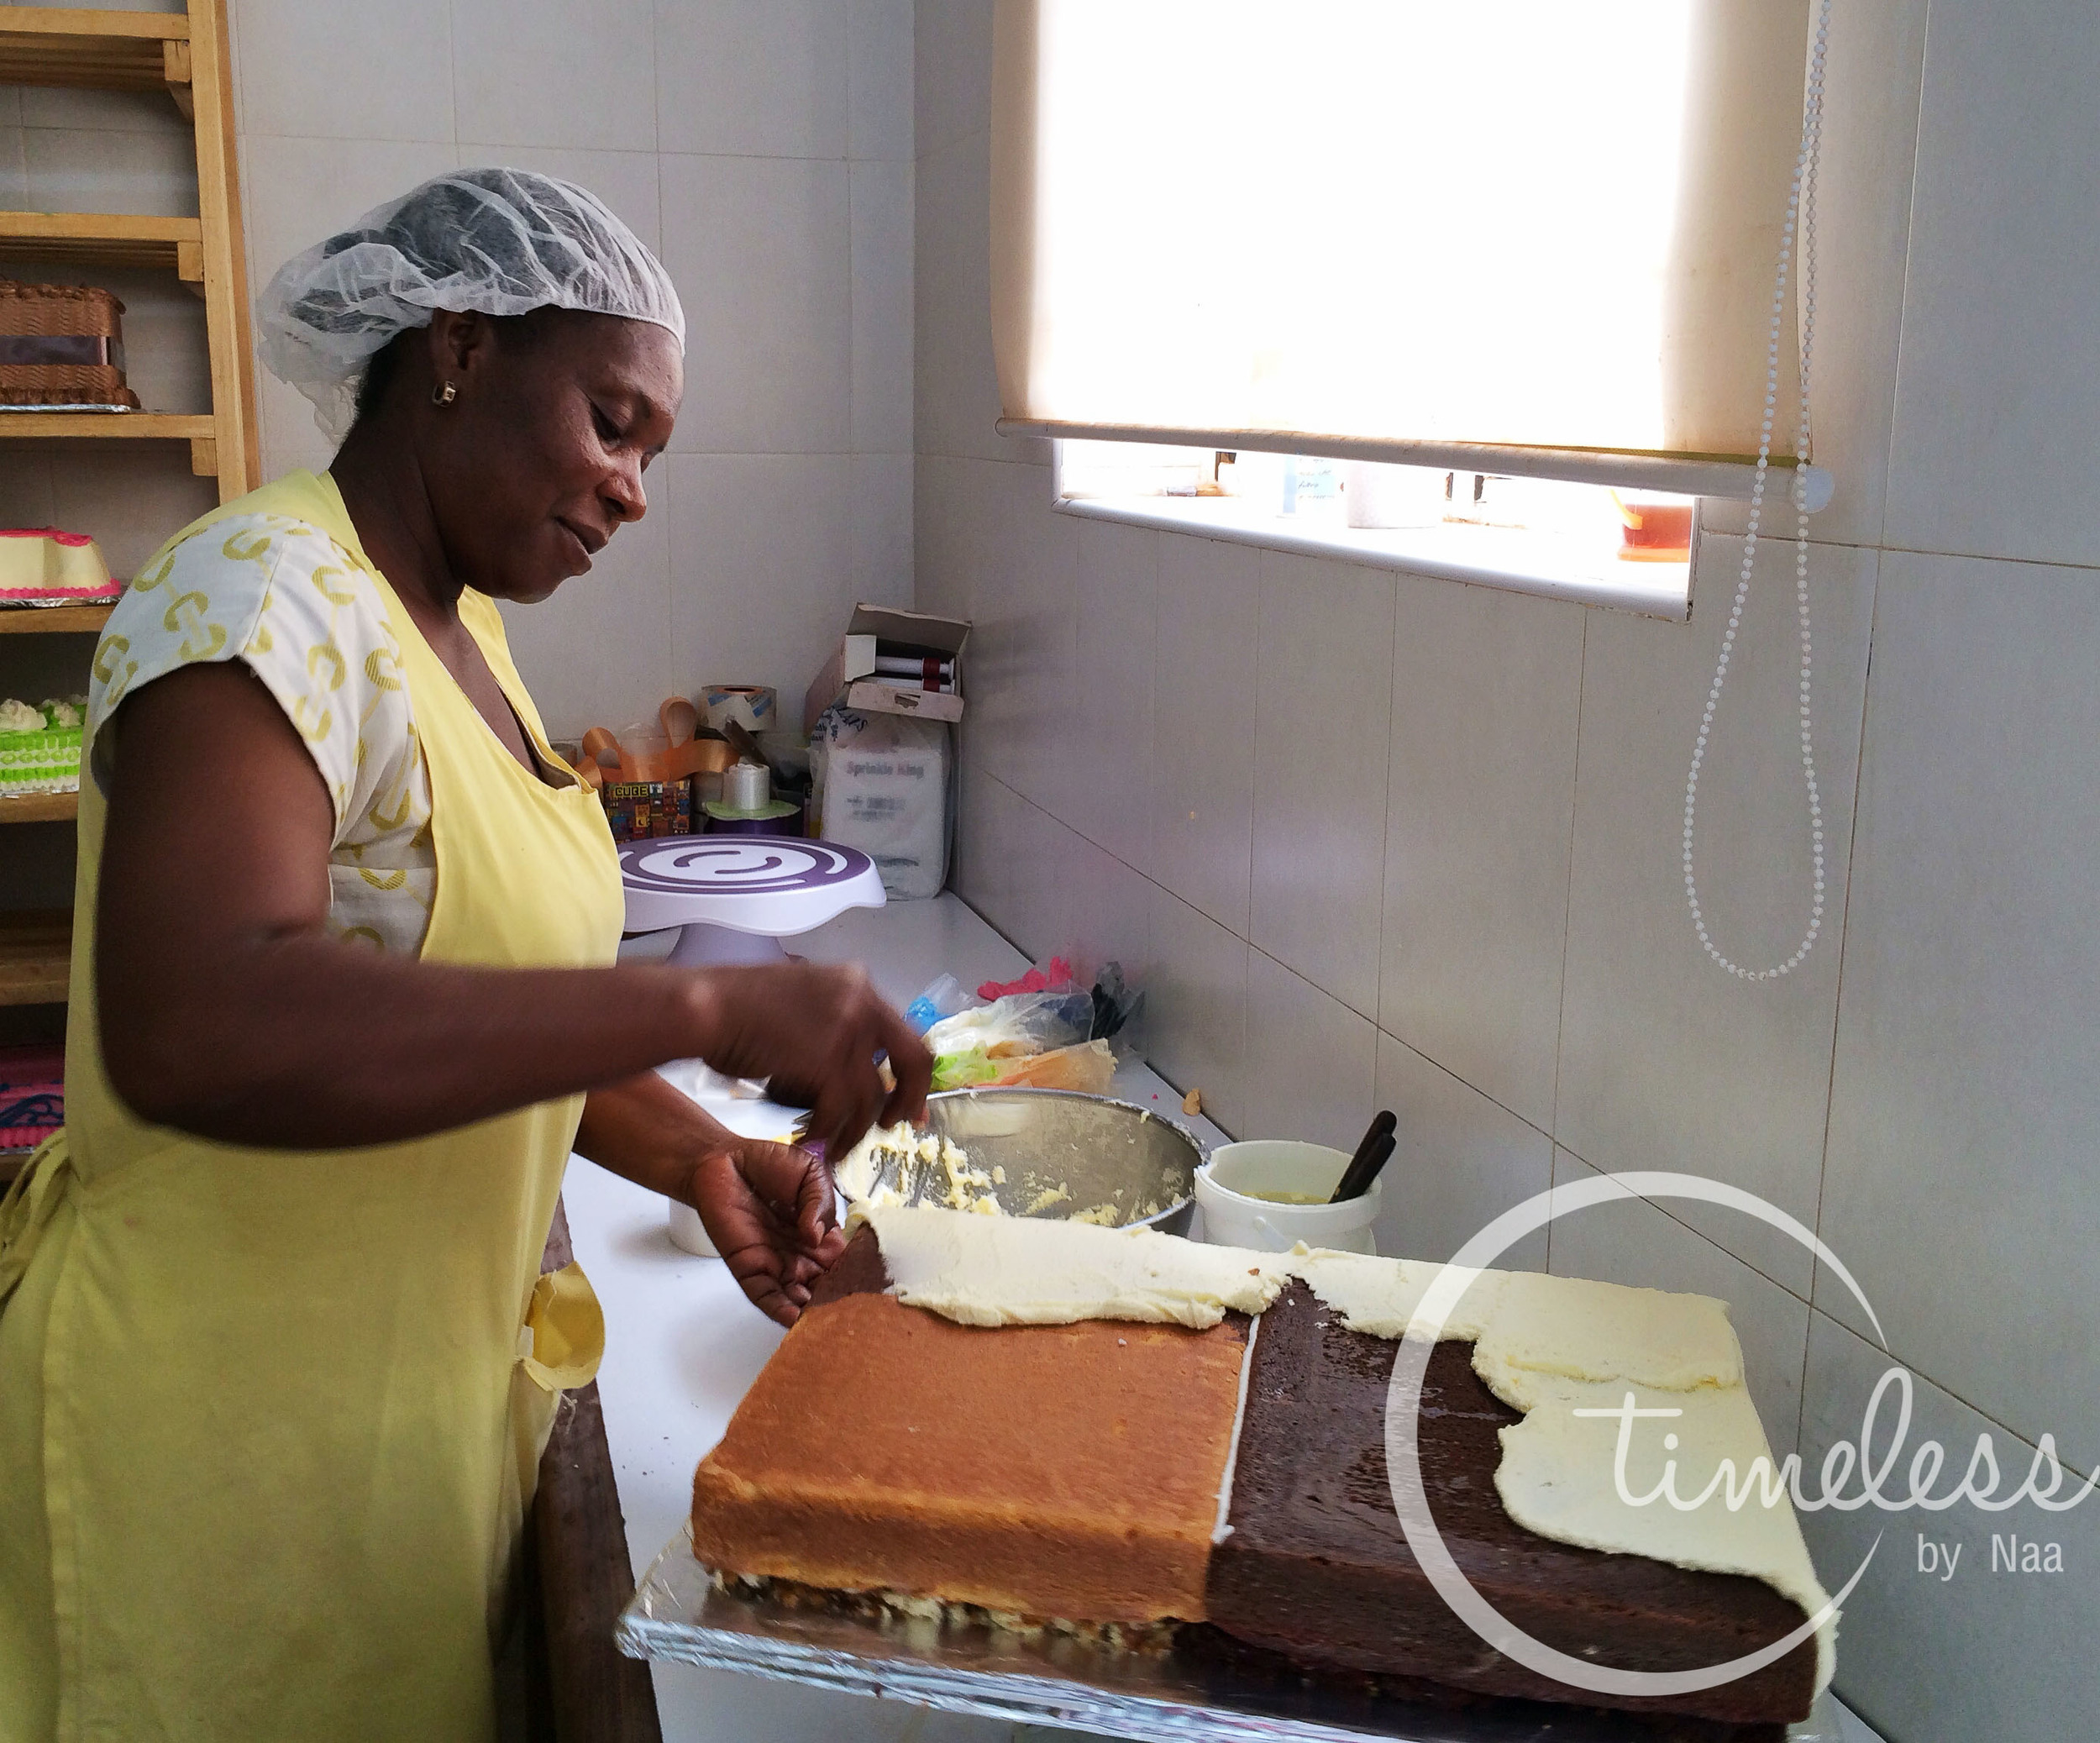 Baker decorating cake with icing